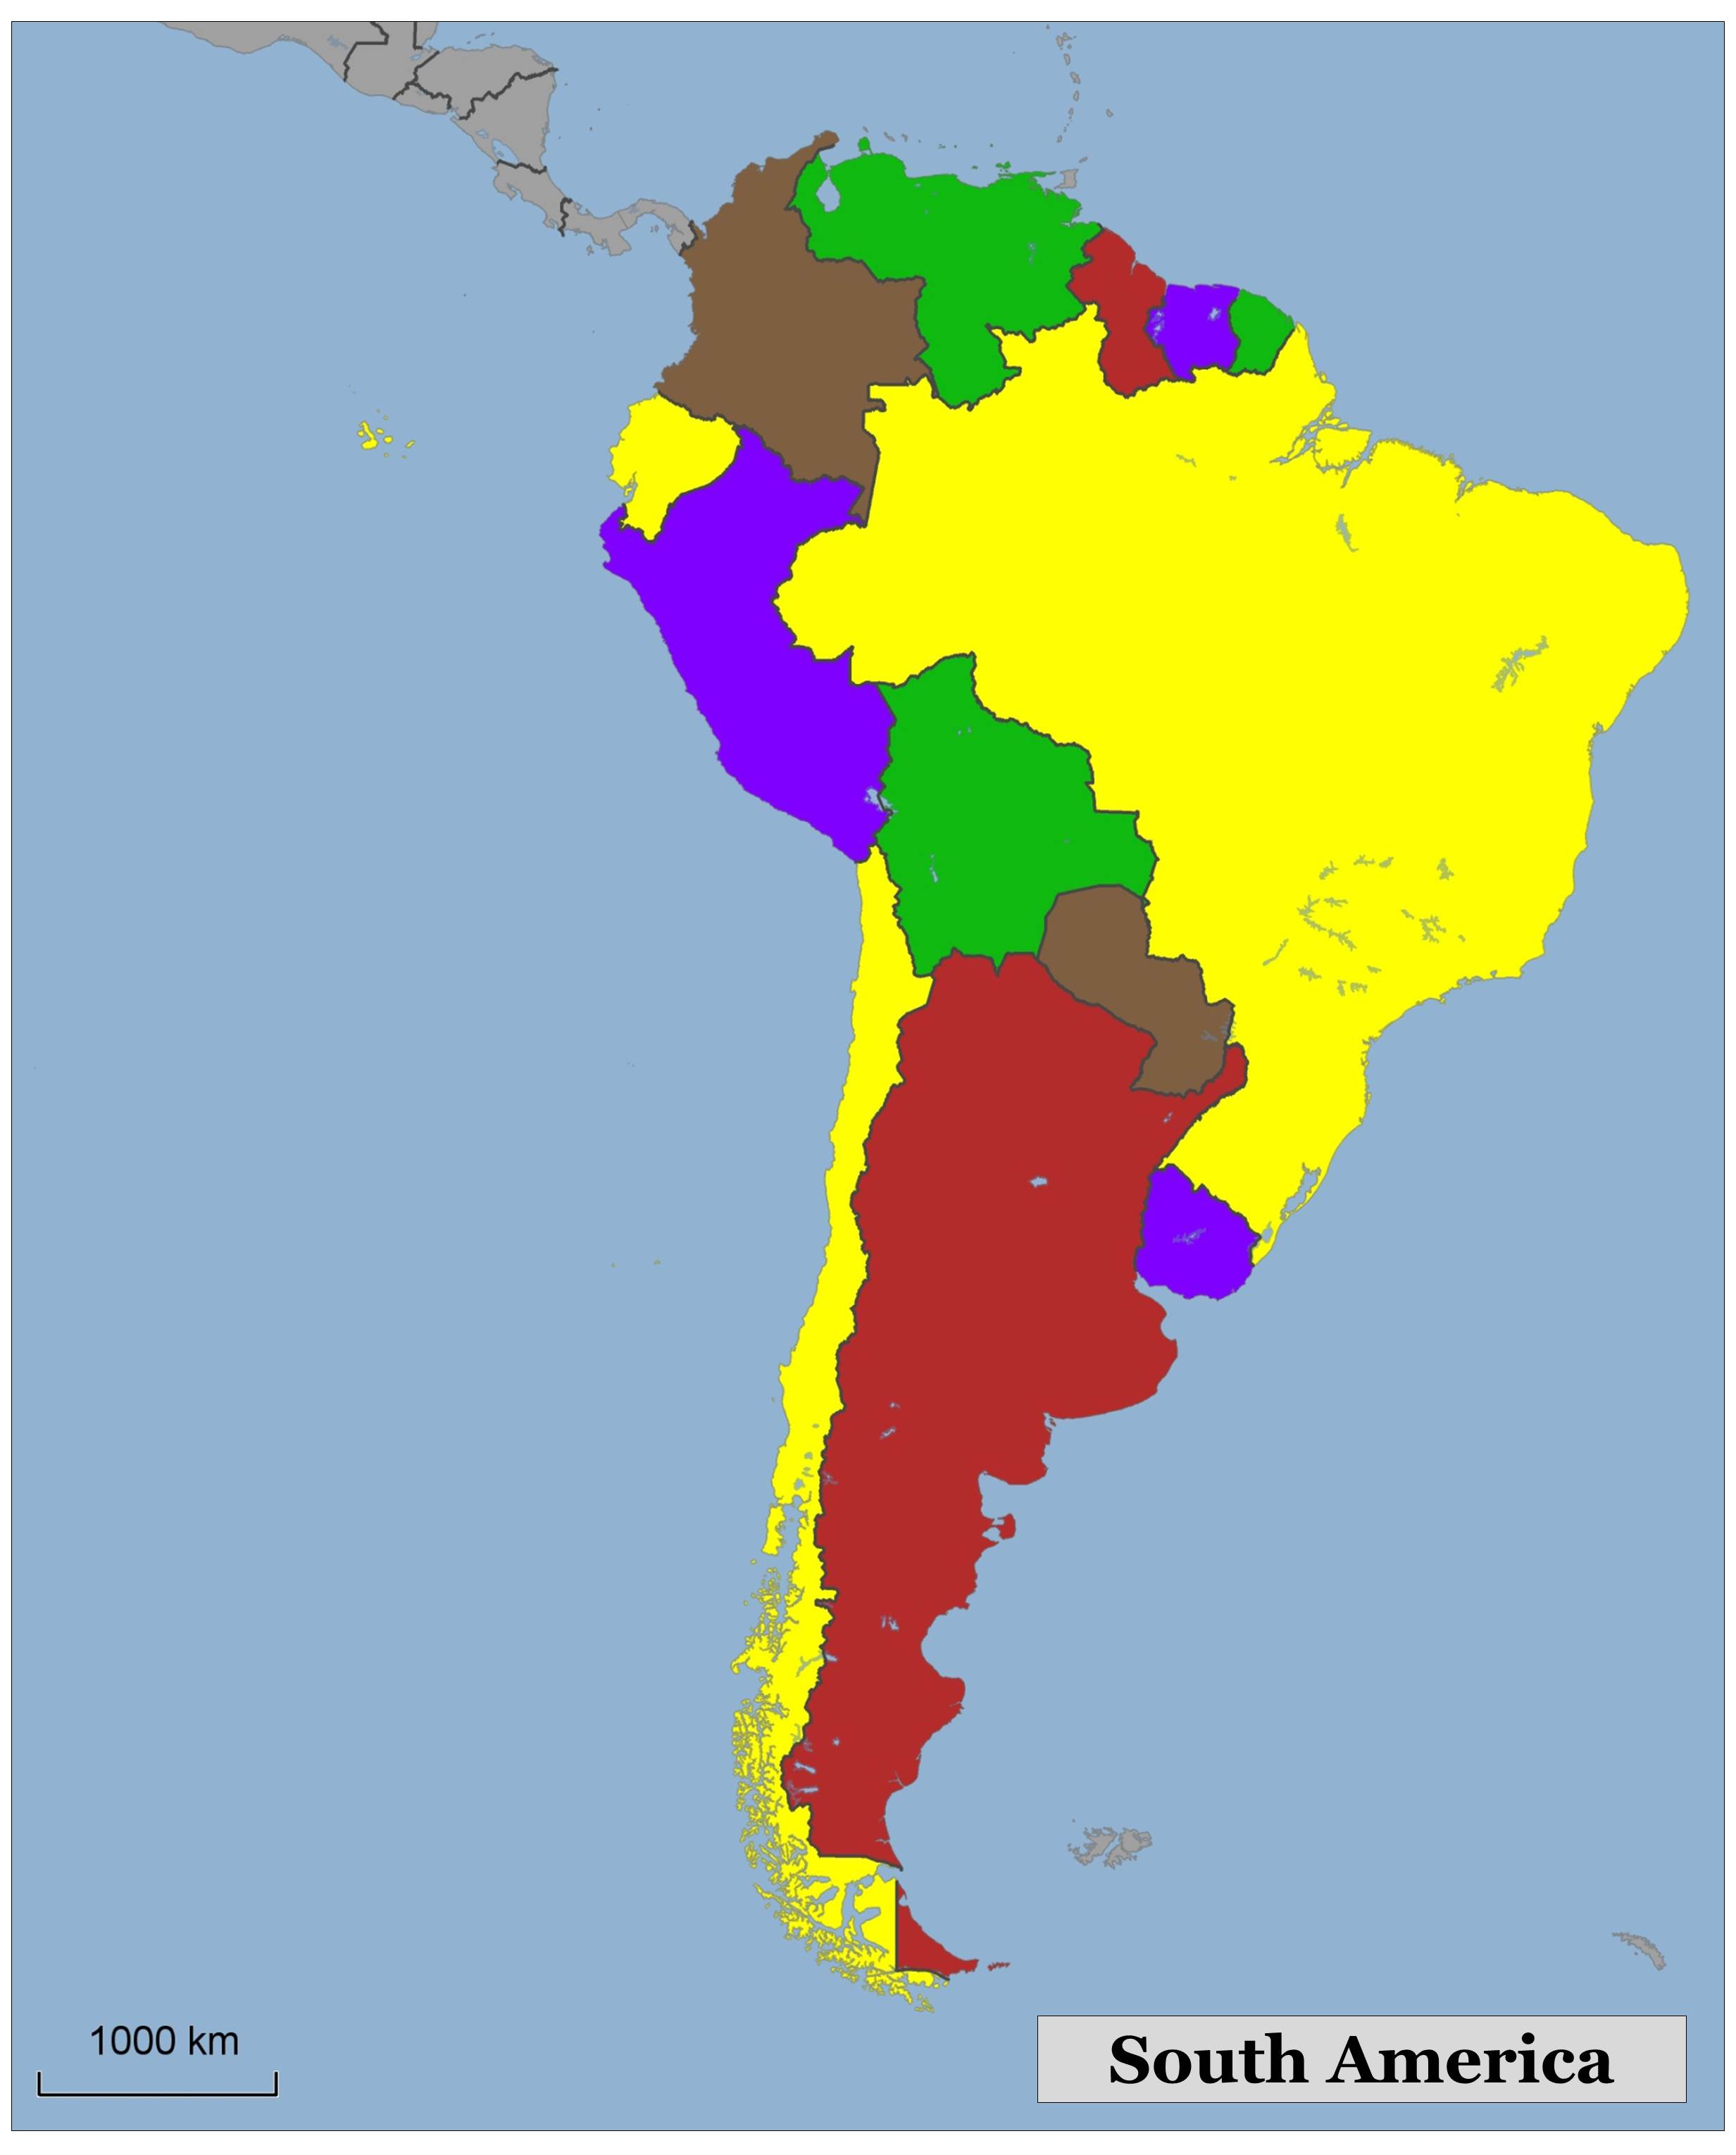 south america color map radiotodorock.tk